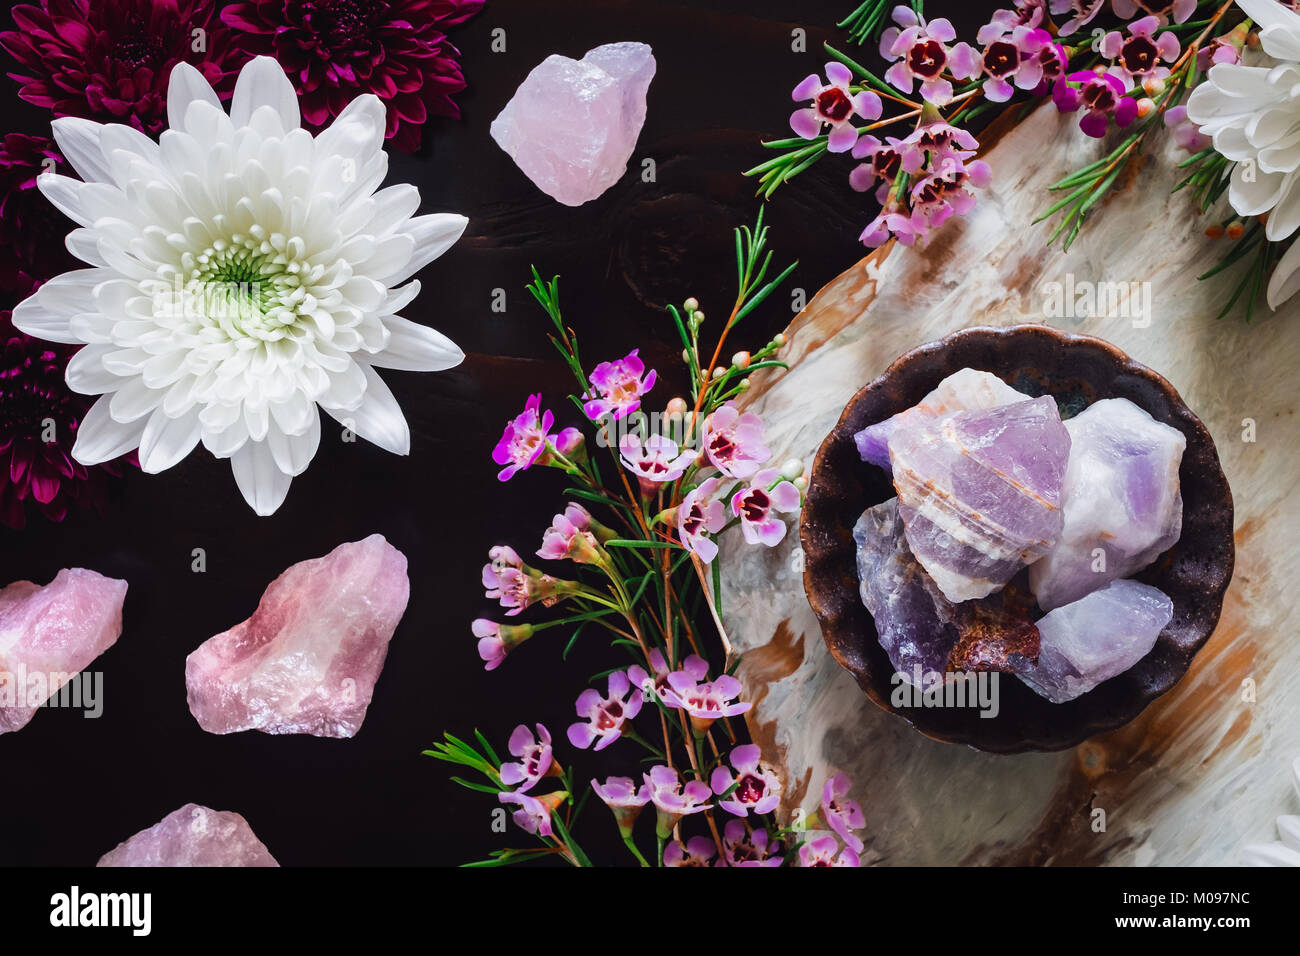 Rough Amethyst and Rose Quartz with Chrysanthemums and Pink Flowers on Dark Table and Pink Flowers on Dark Table - Stock Image